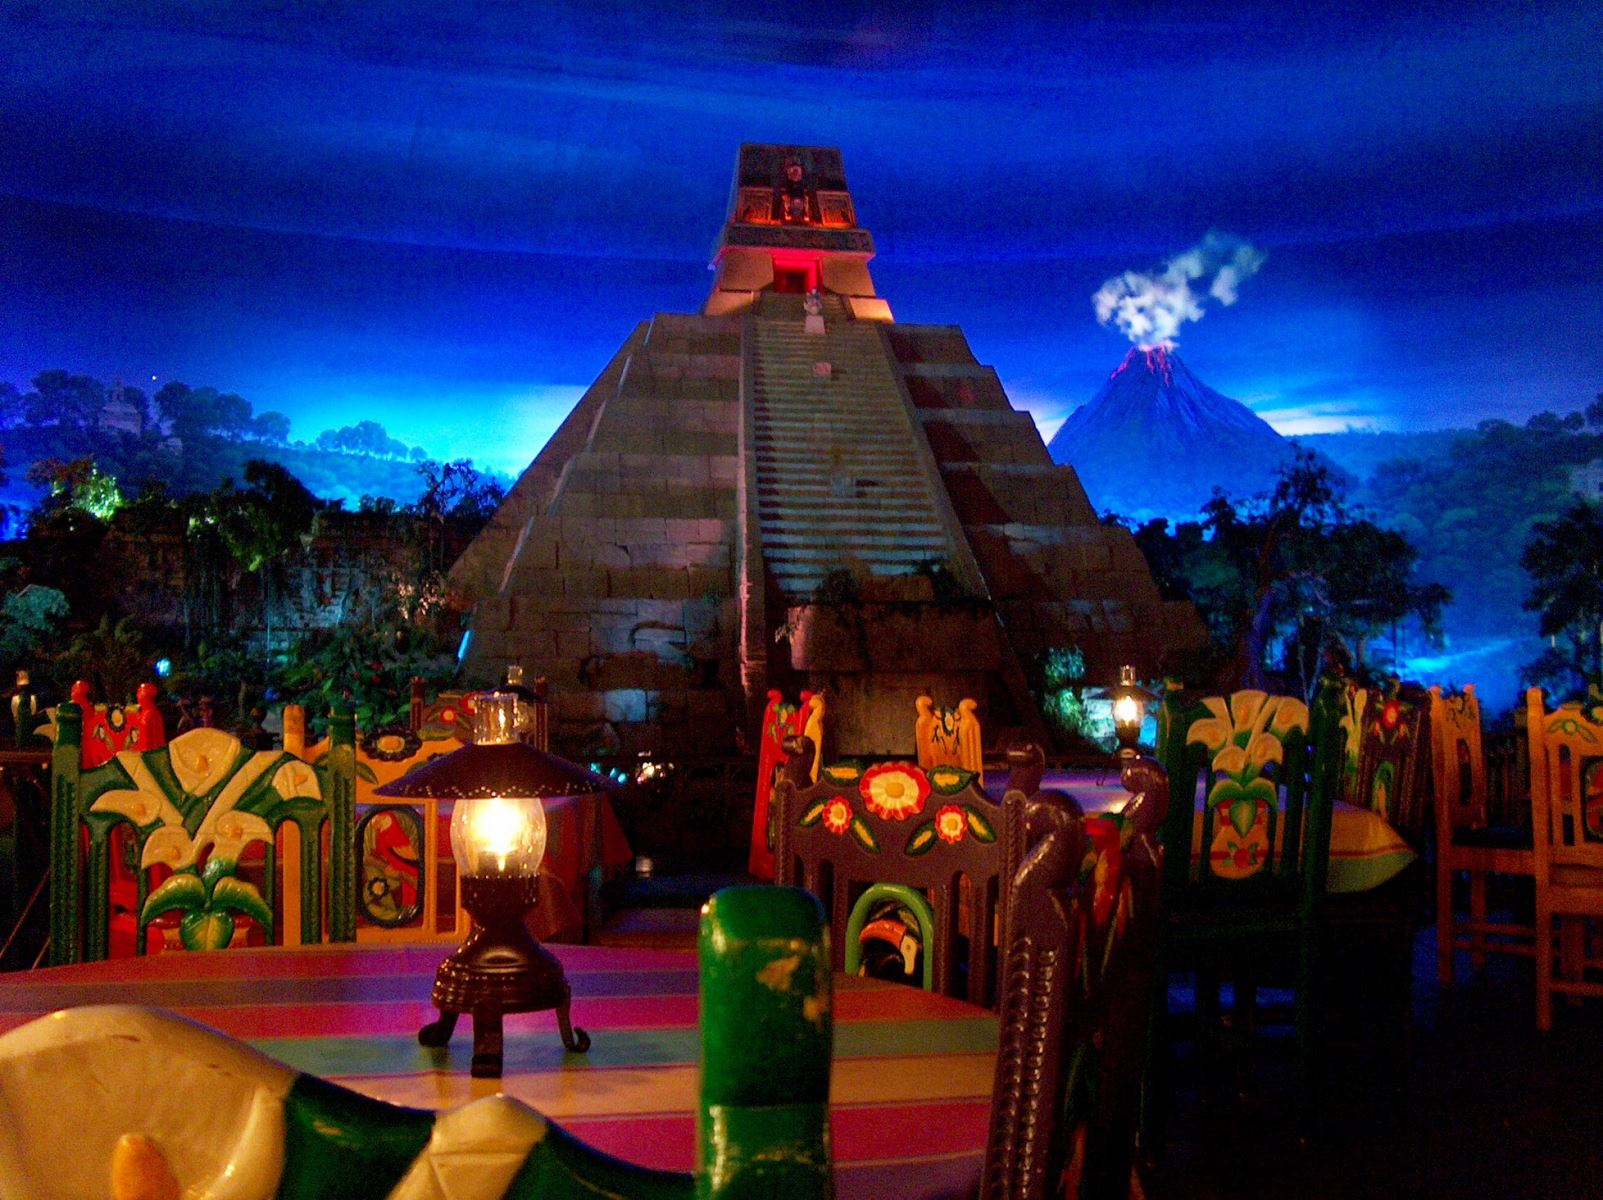 EPCOT Restaurant in Mexico